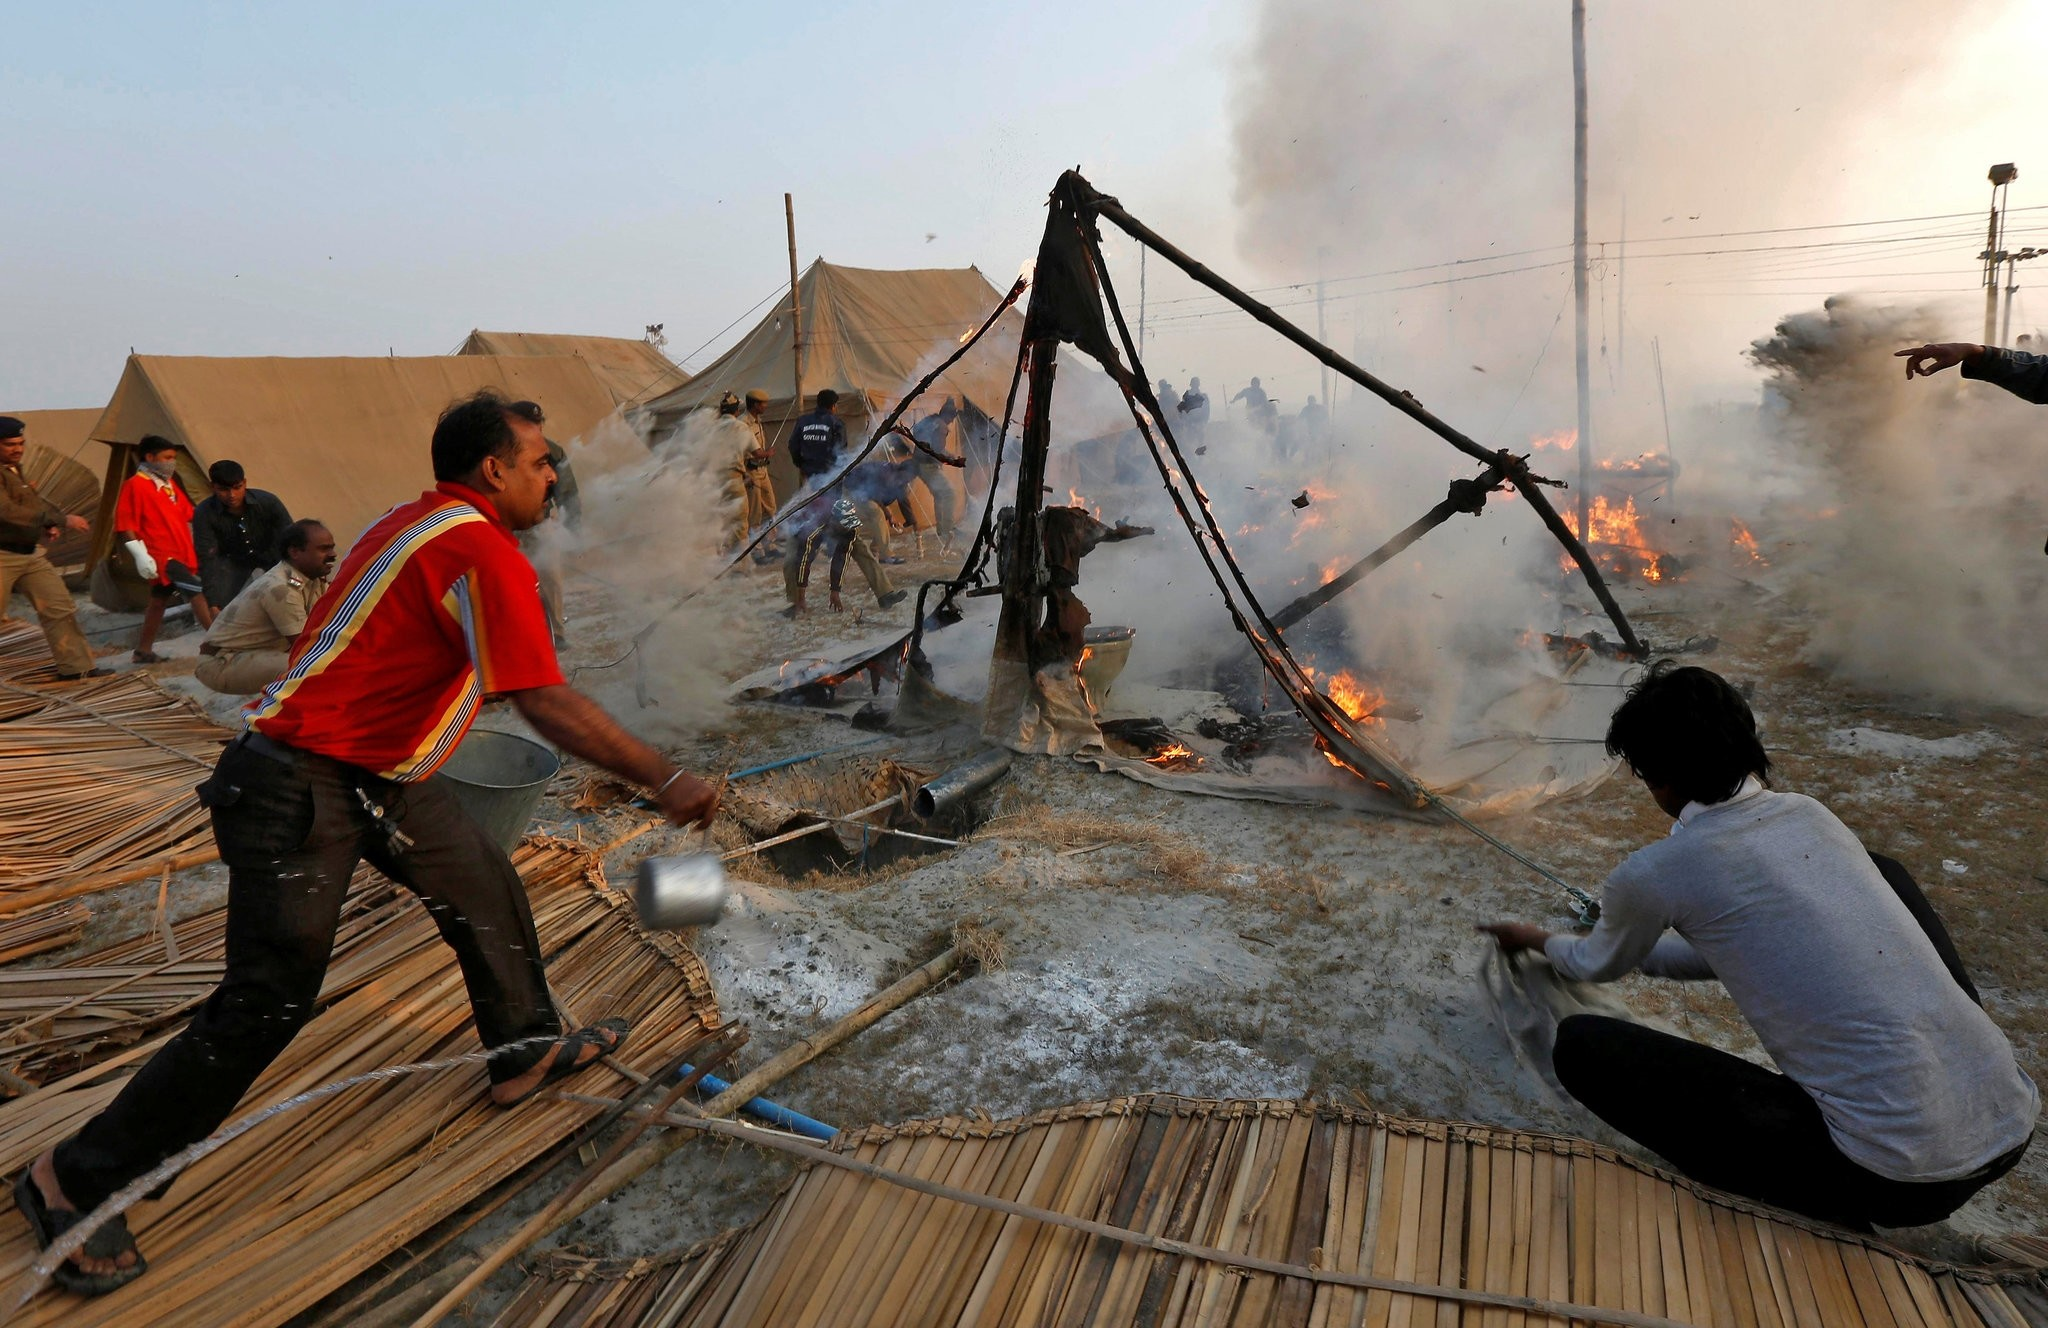 People throw water to extinguish fire that broke out in a tent on the banks of the river Ganges where hundreds of Hindu pilgrims had gathered for of ,Makar Sankranti, festival, in India. (REUTERS PHOTO)